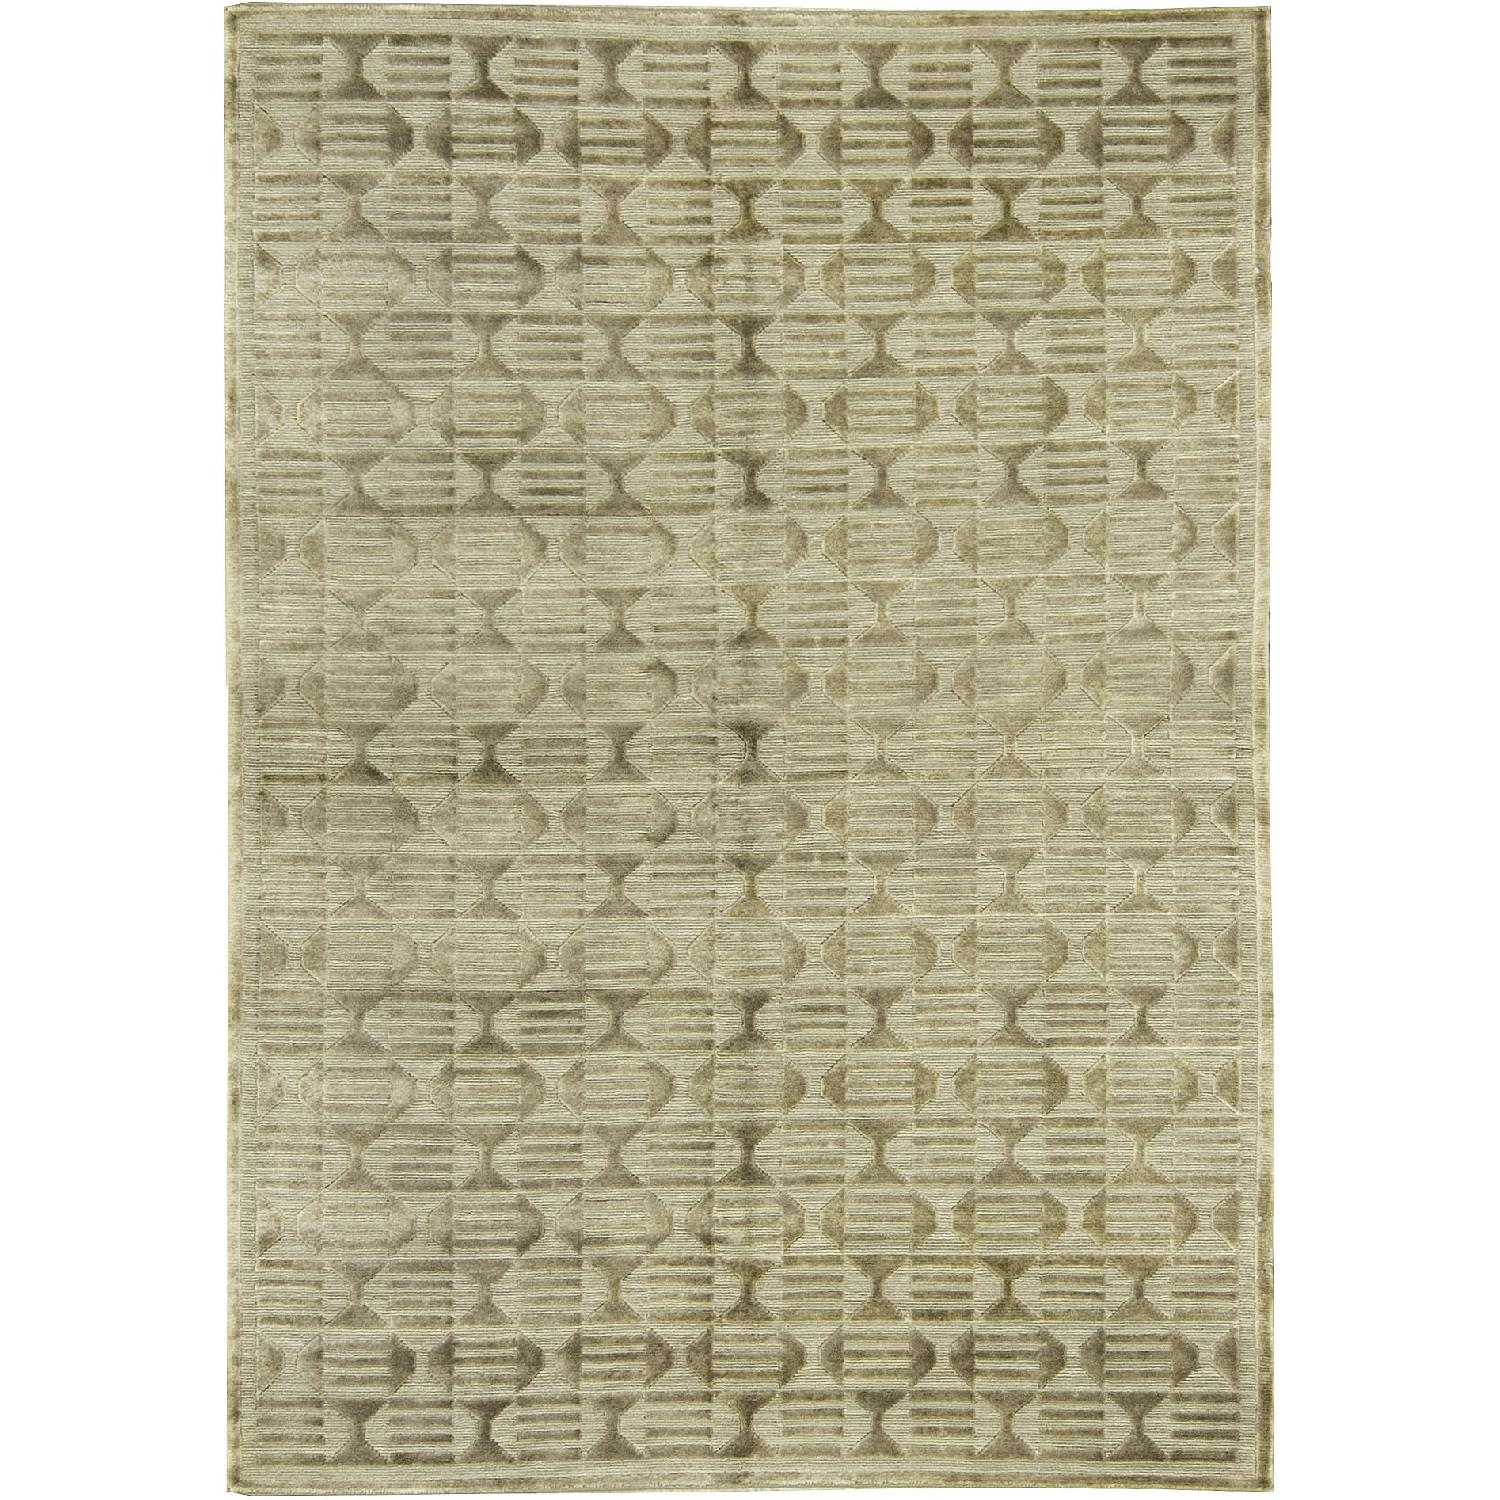 Himalayan Art Contemporary Hand Woven Area Rug